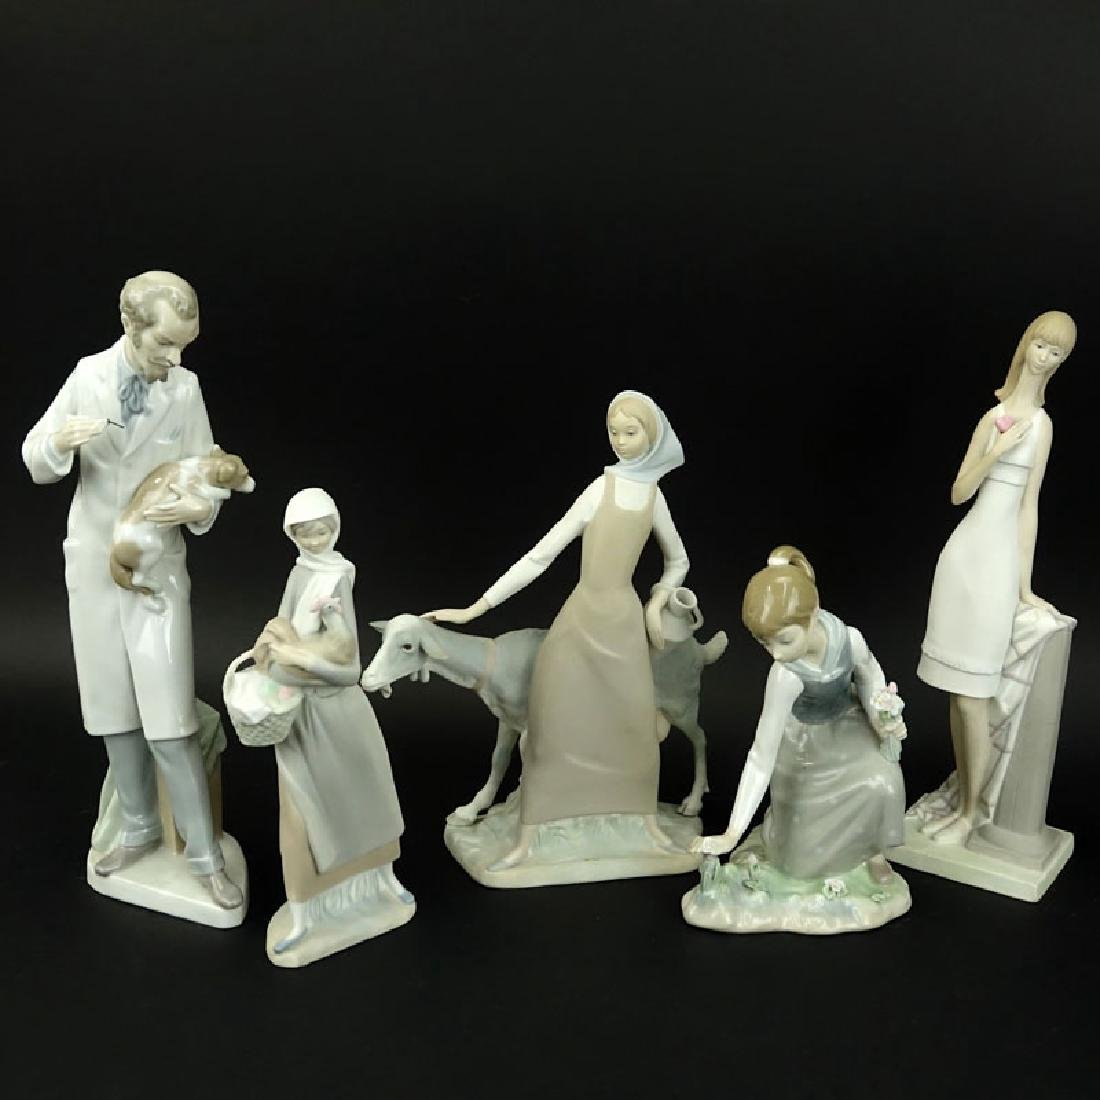 Collection of Five (5) Lladro Porcelain Figurines.